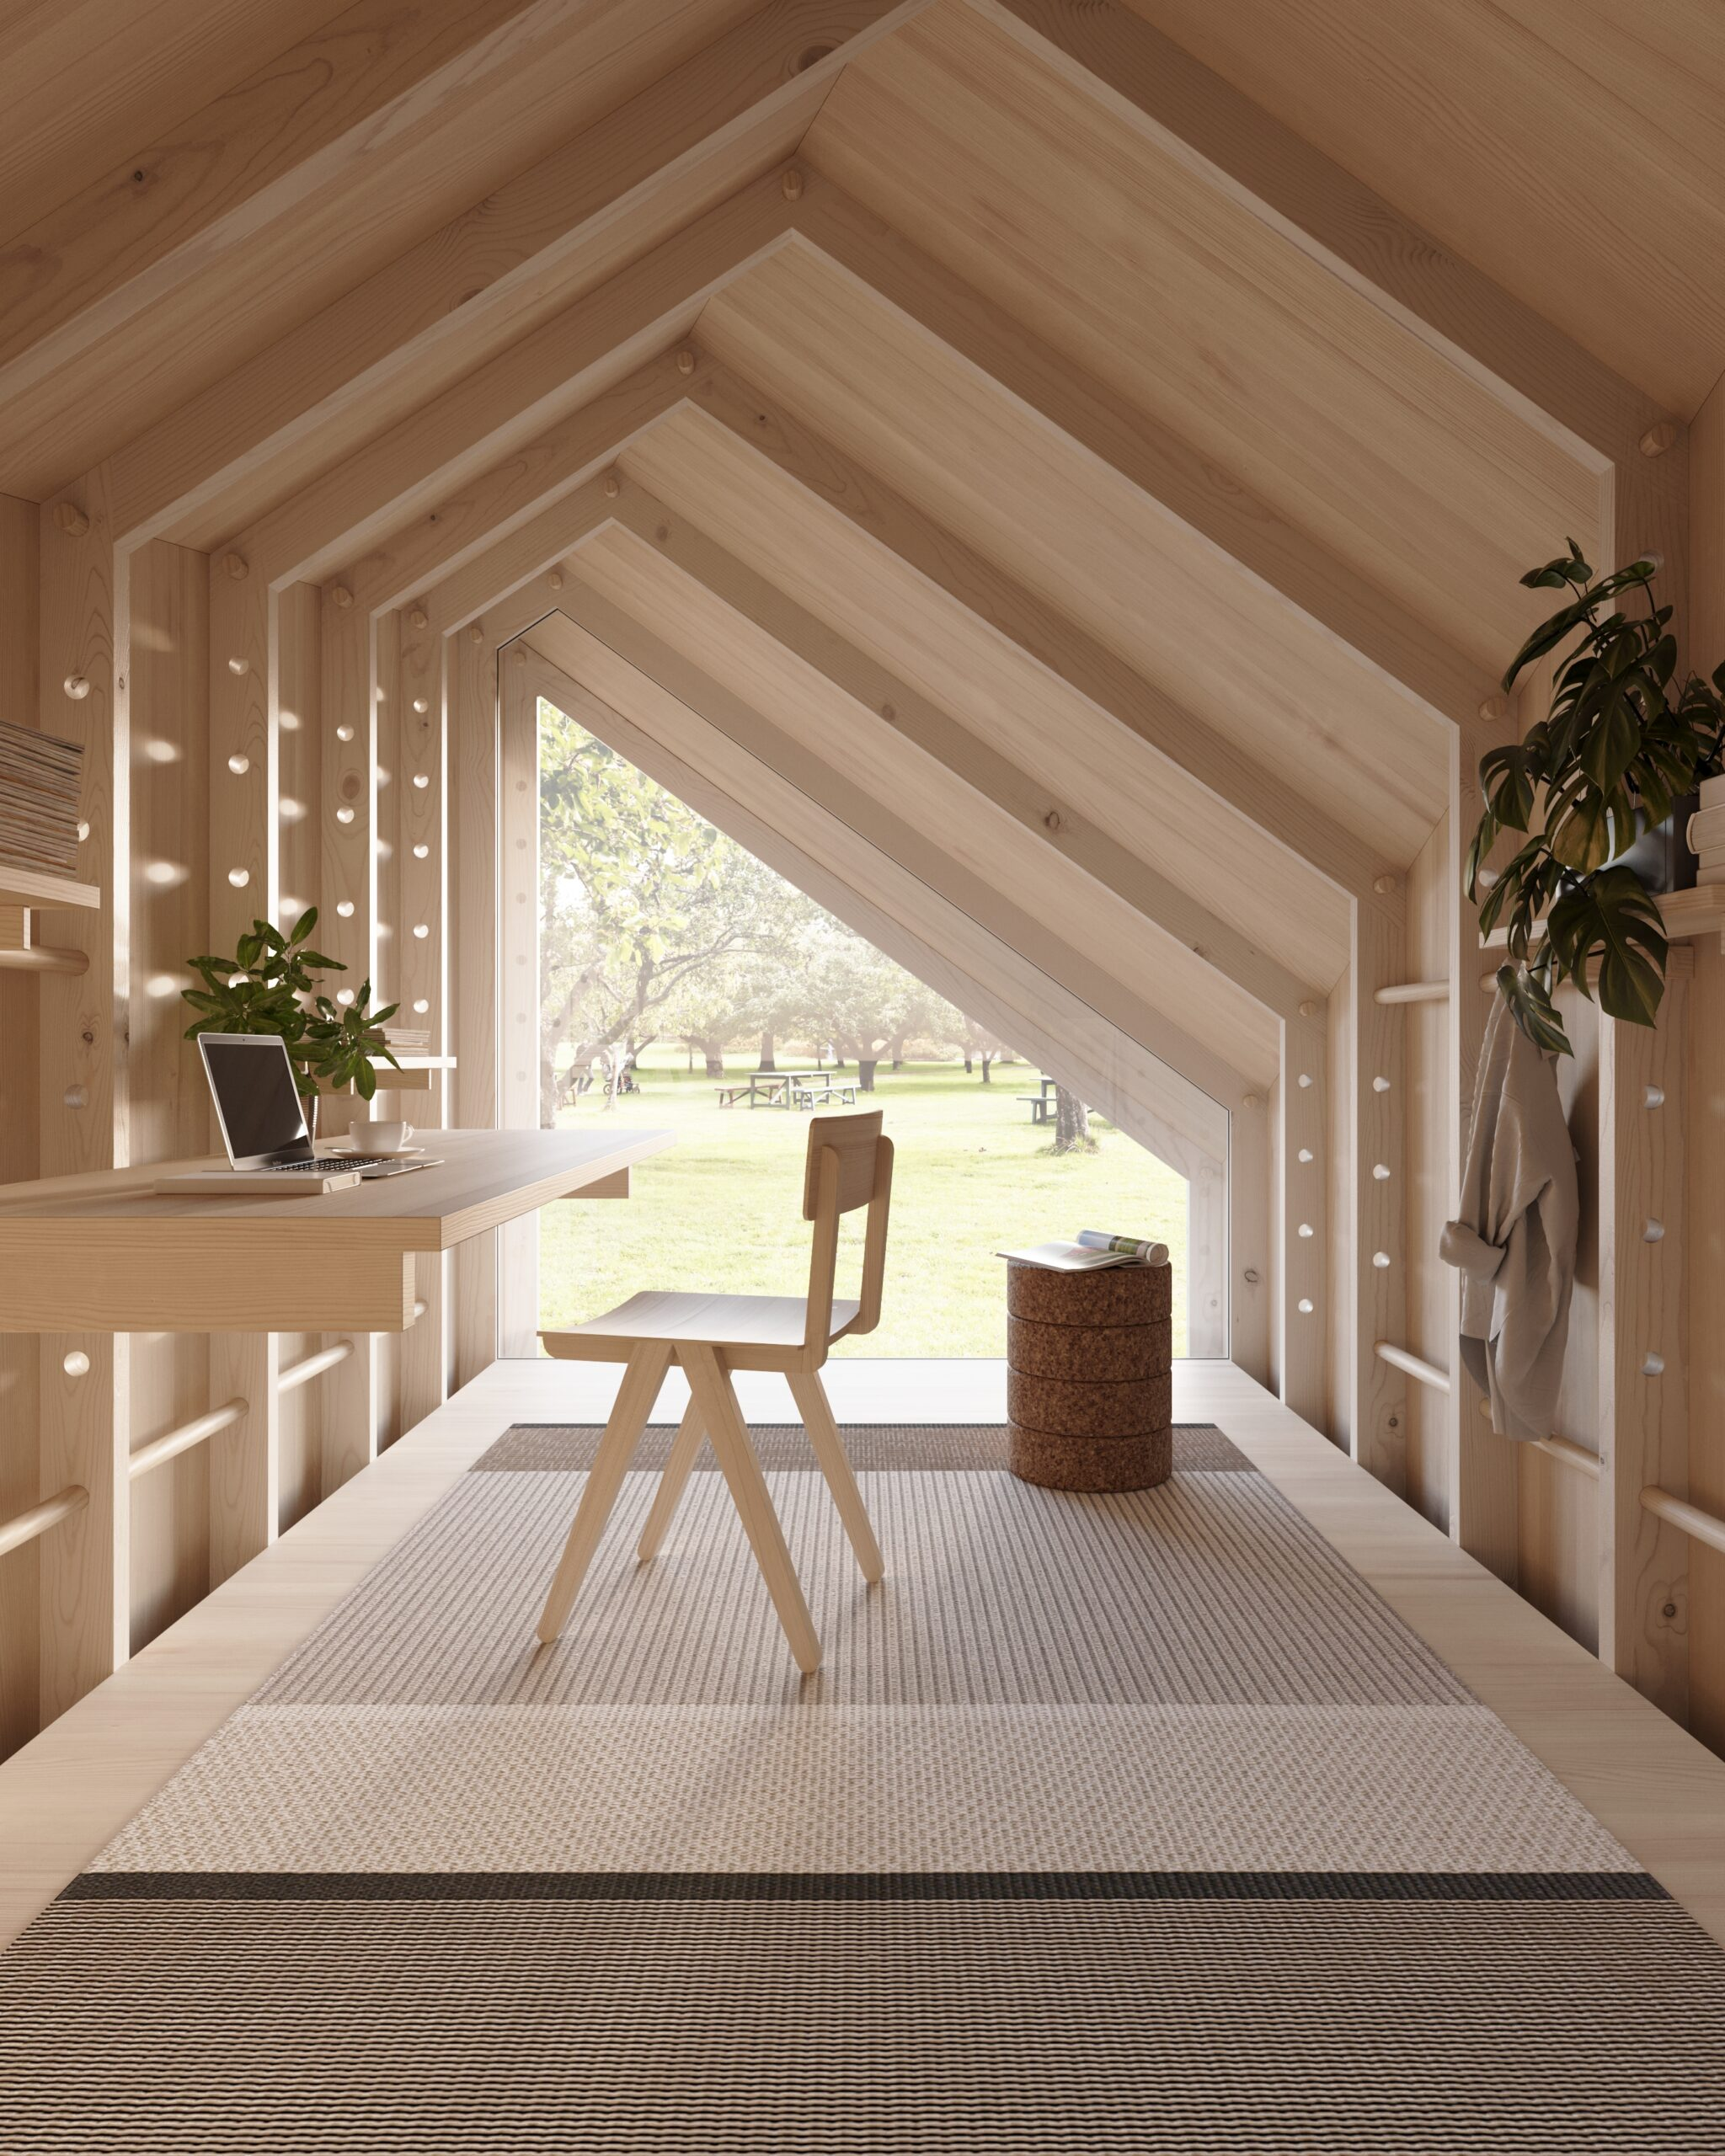 Rebirth of the Home Office: Restoring a Connection with Nature | Live Nordic